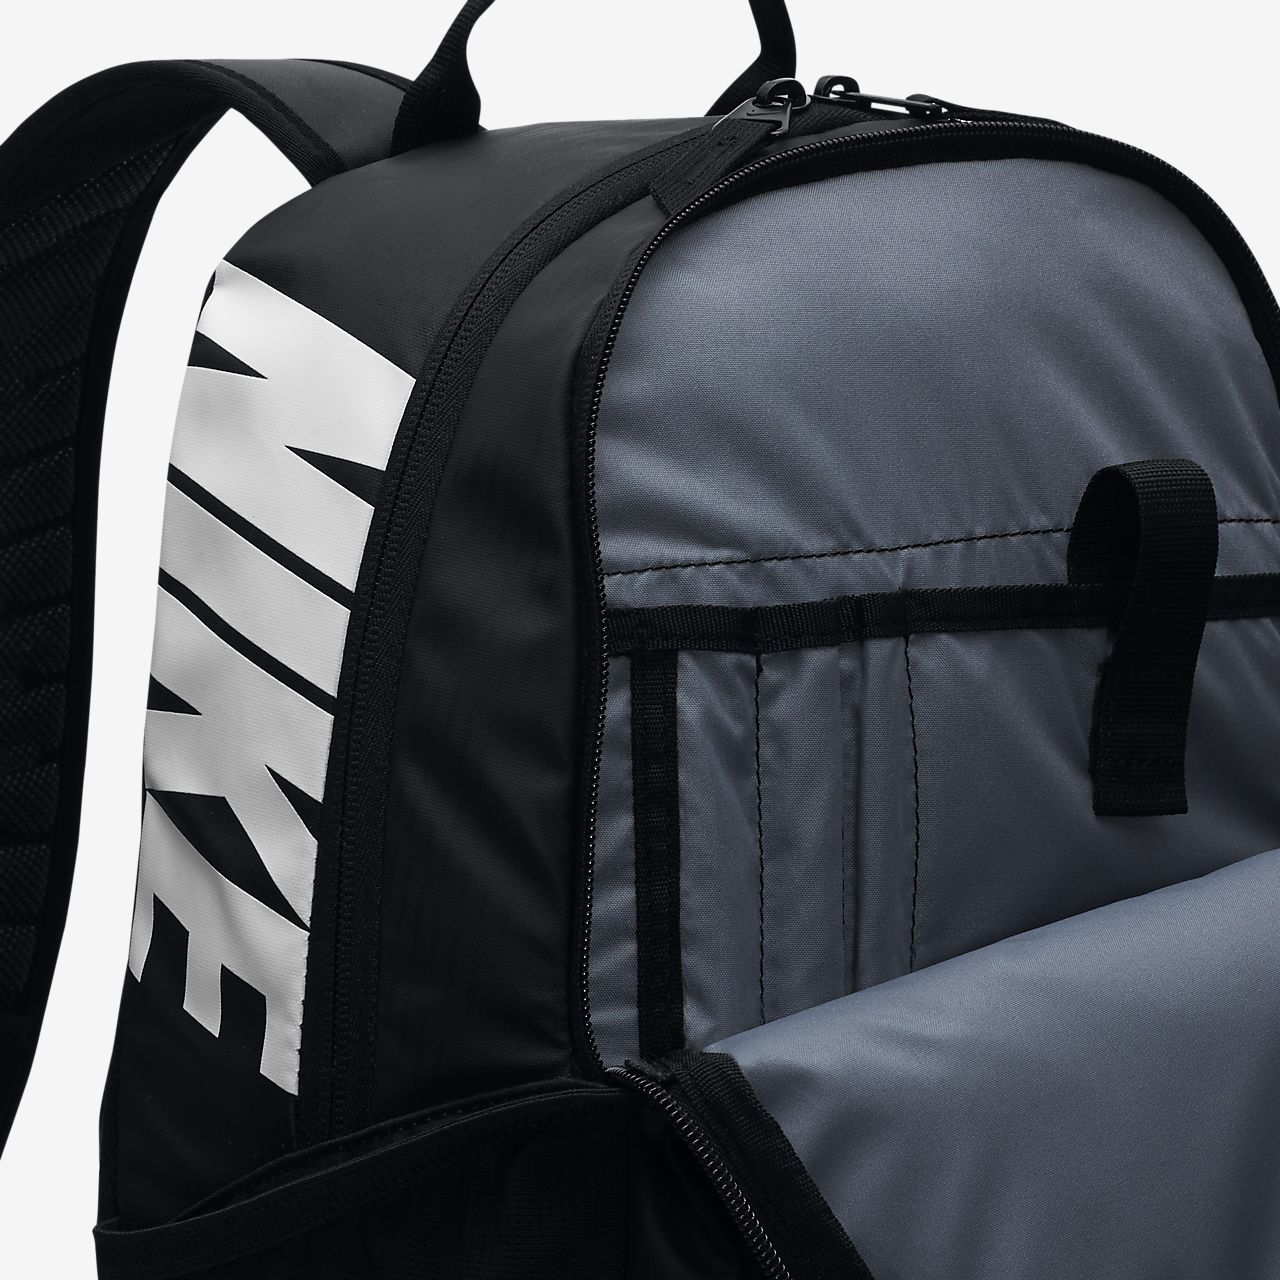 c2daaeac6f Nike Alpha Adapt Rev Backpack. Nike.com ID